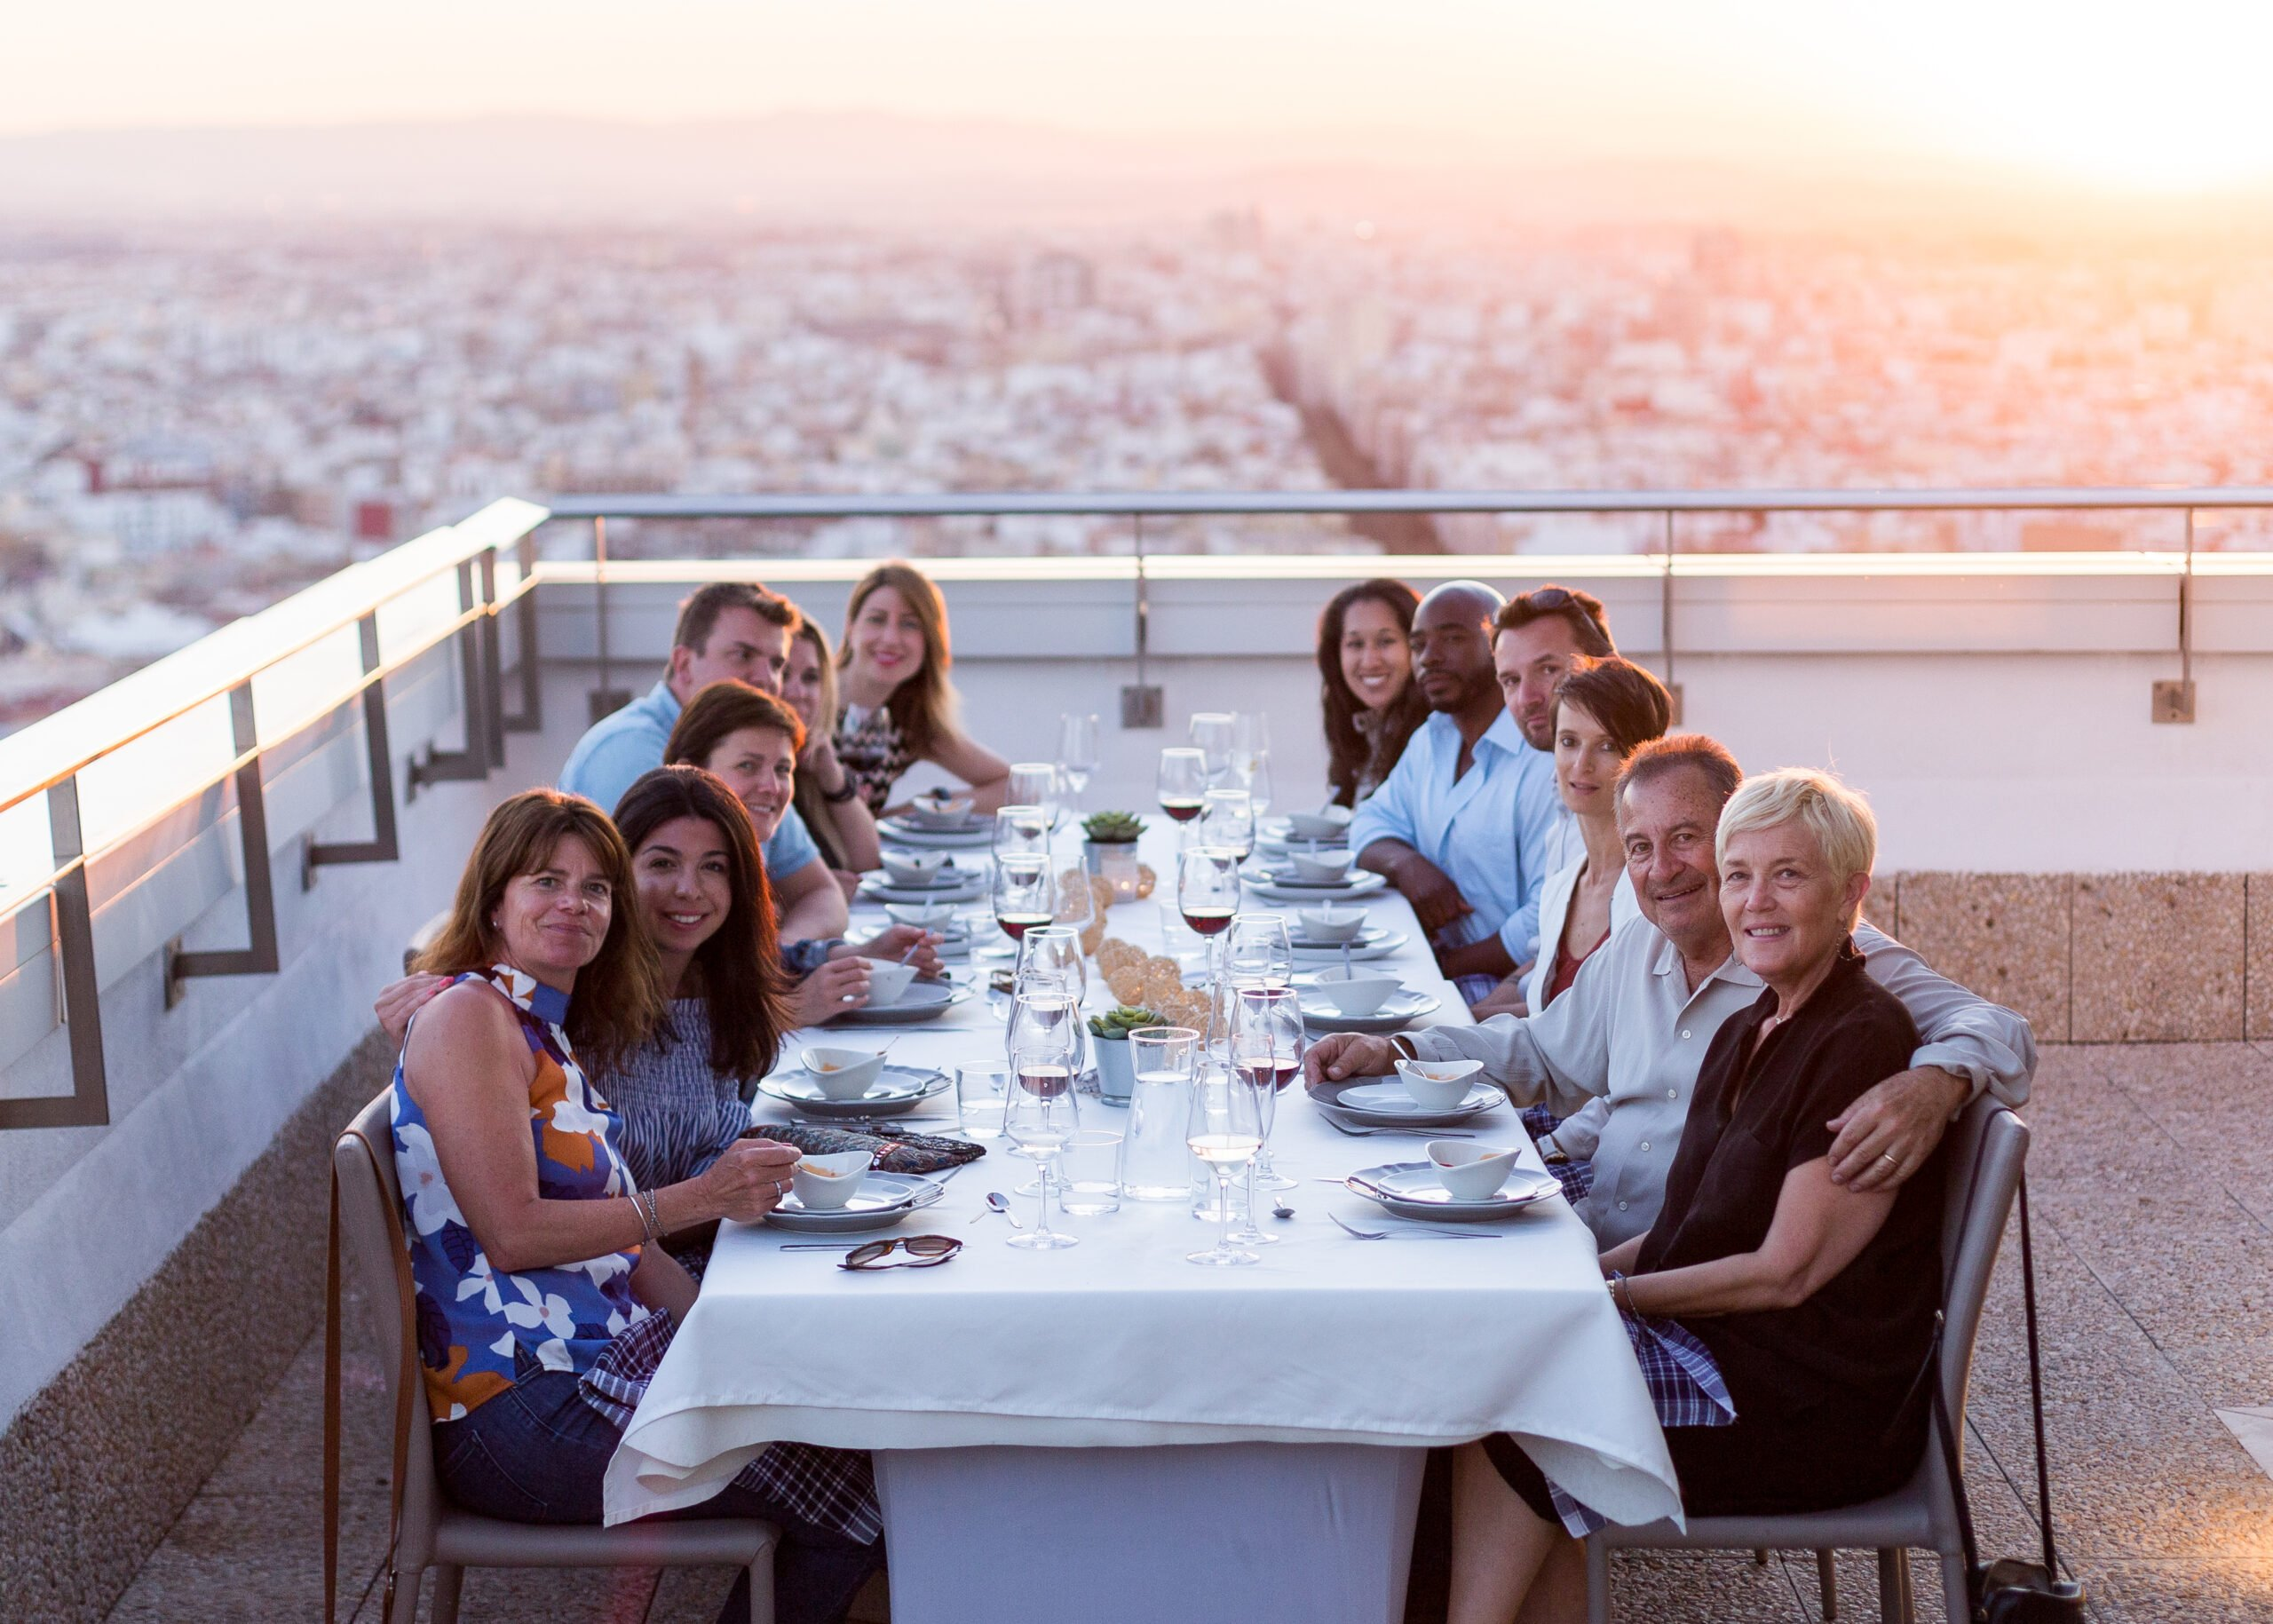 Discover Outstanding Panoramic Views Of Valencia In Our City Of Arts & Sciences Tour With Rooftop Wine Tasting And Tapas